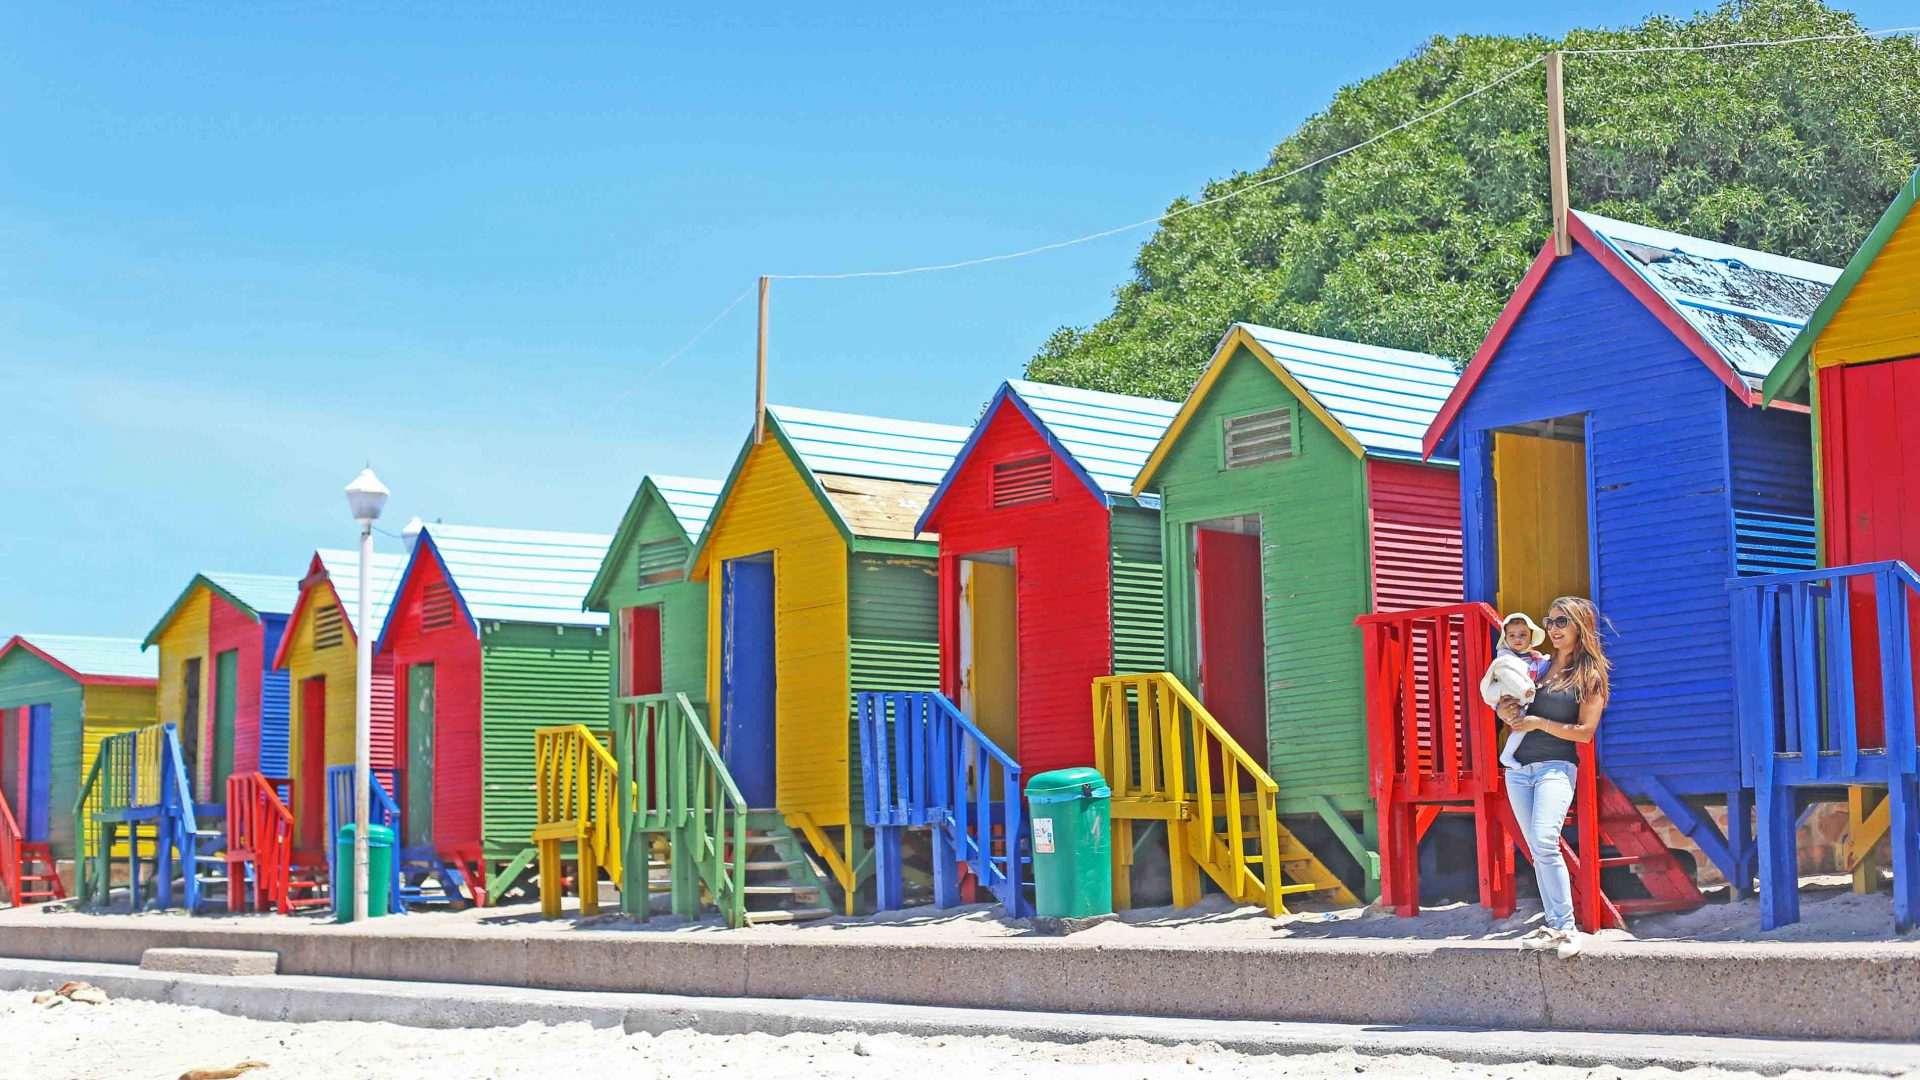 Baby Gia Sereni and her mother, writer Anashi Shah, outside these colorful beach huts in South Africa.